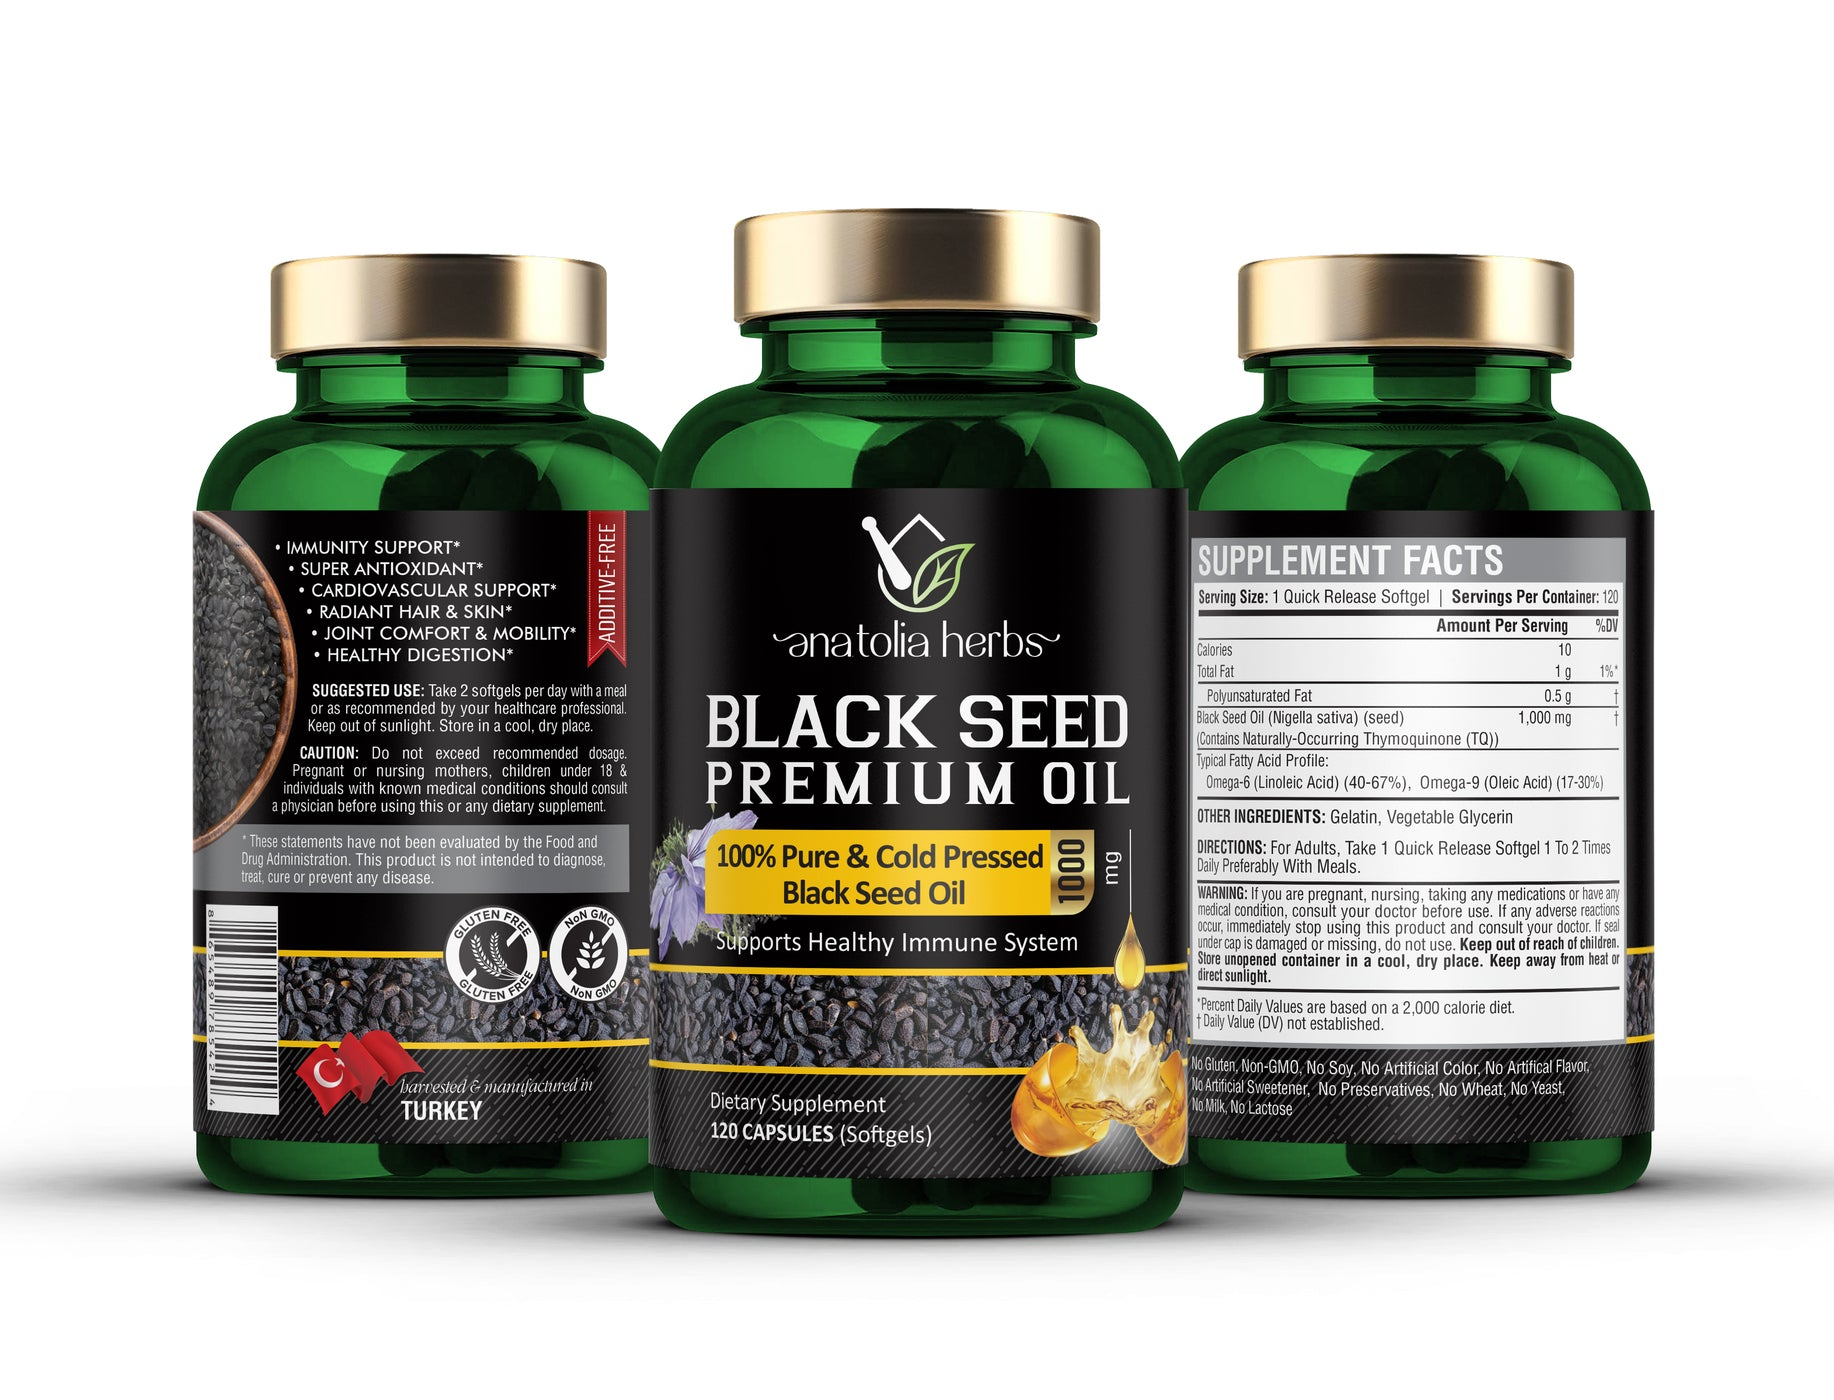 wholesale black seed oil